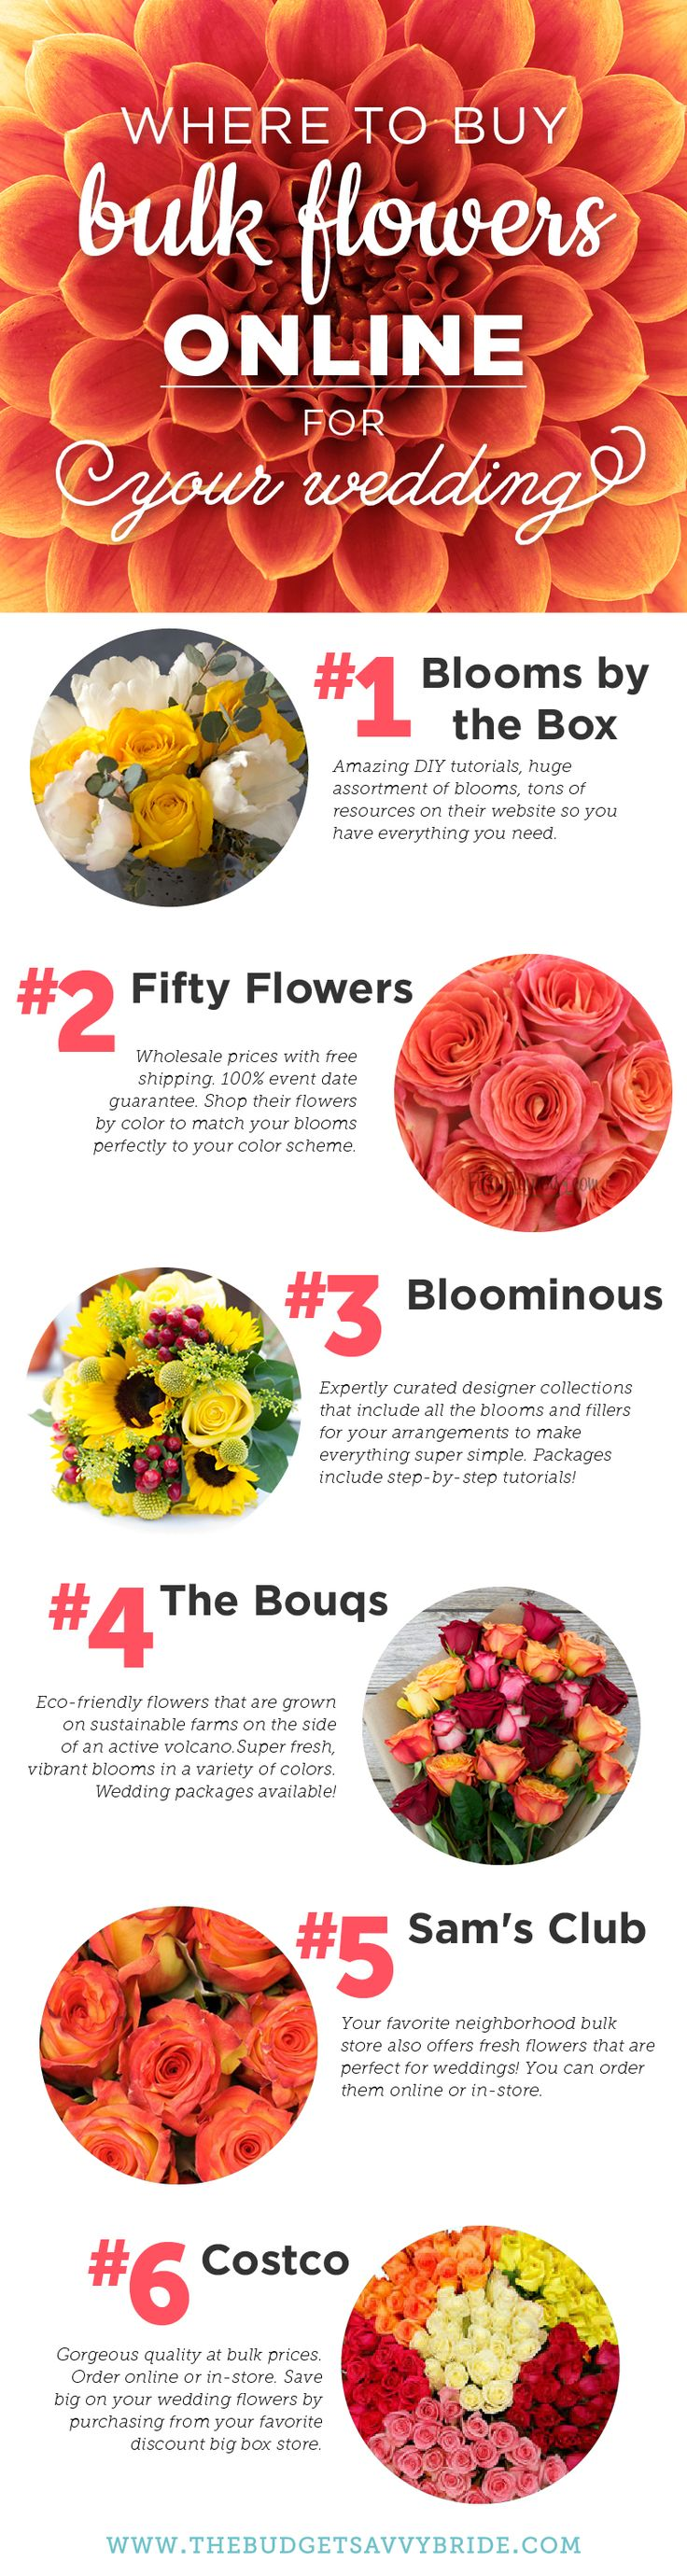 Thinking of DIYing your wedding flowers? Be sure to check out these online resources for bulk flowers!